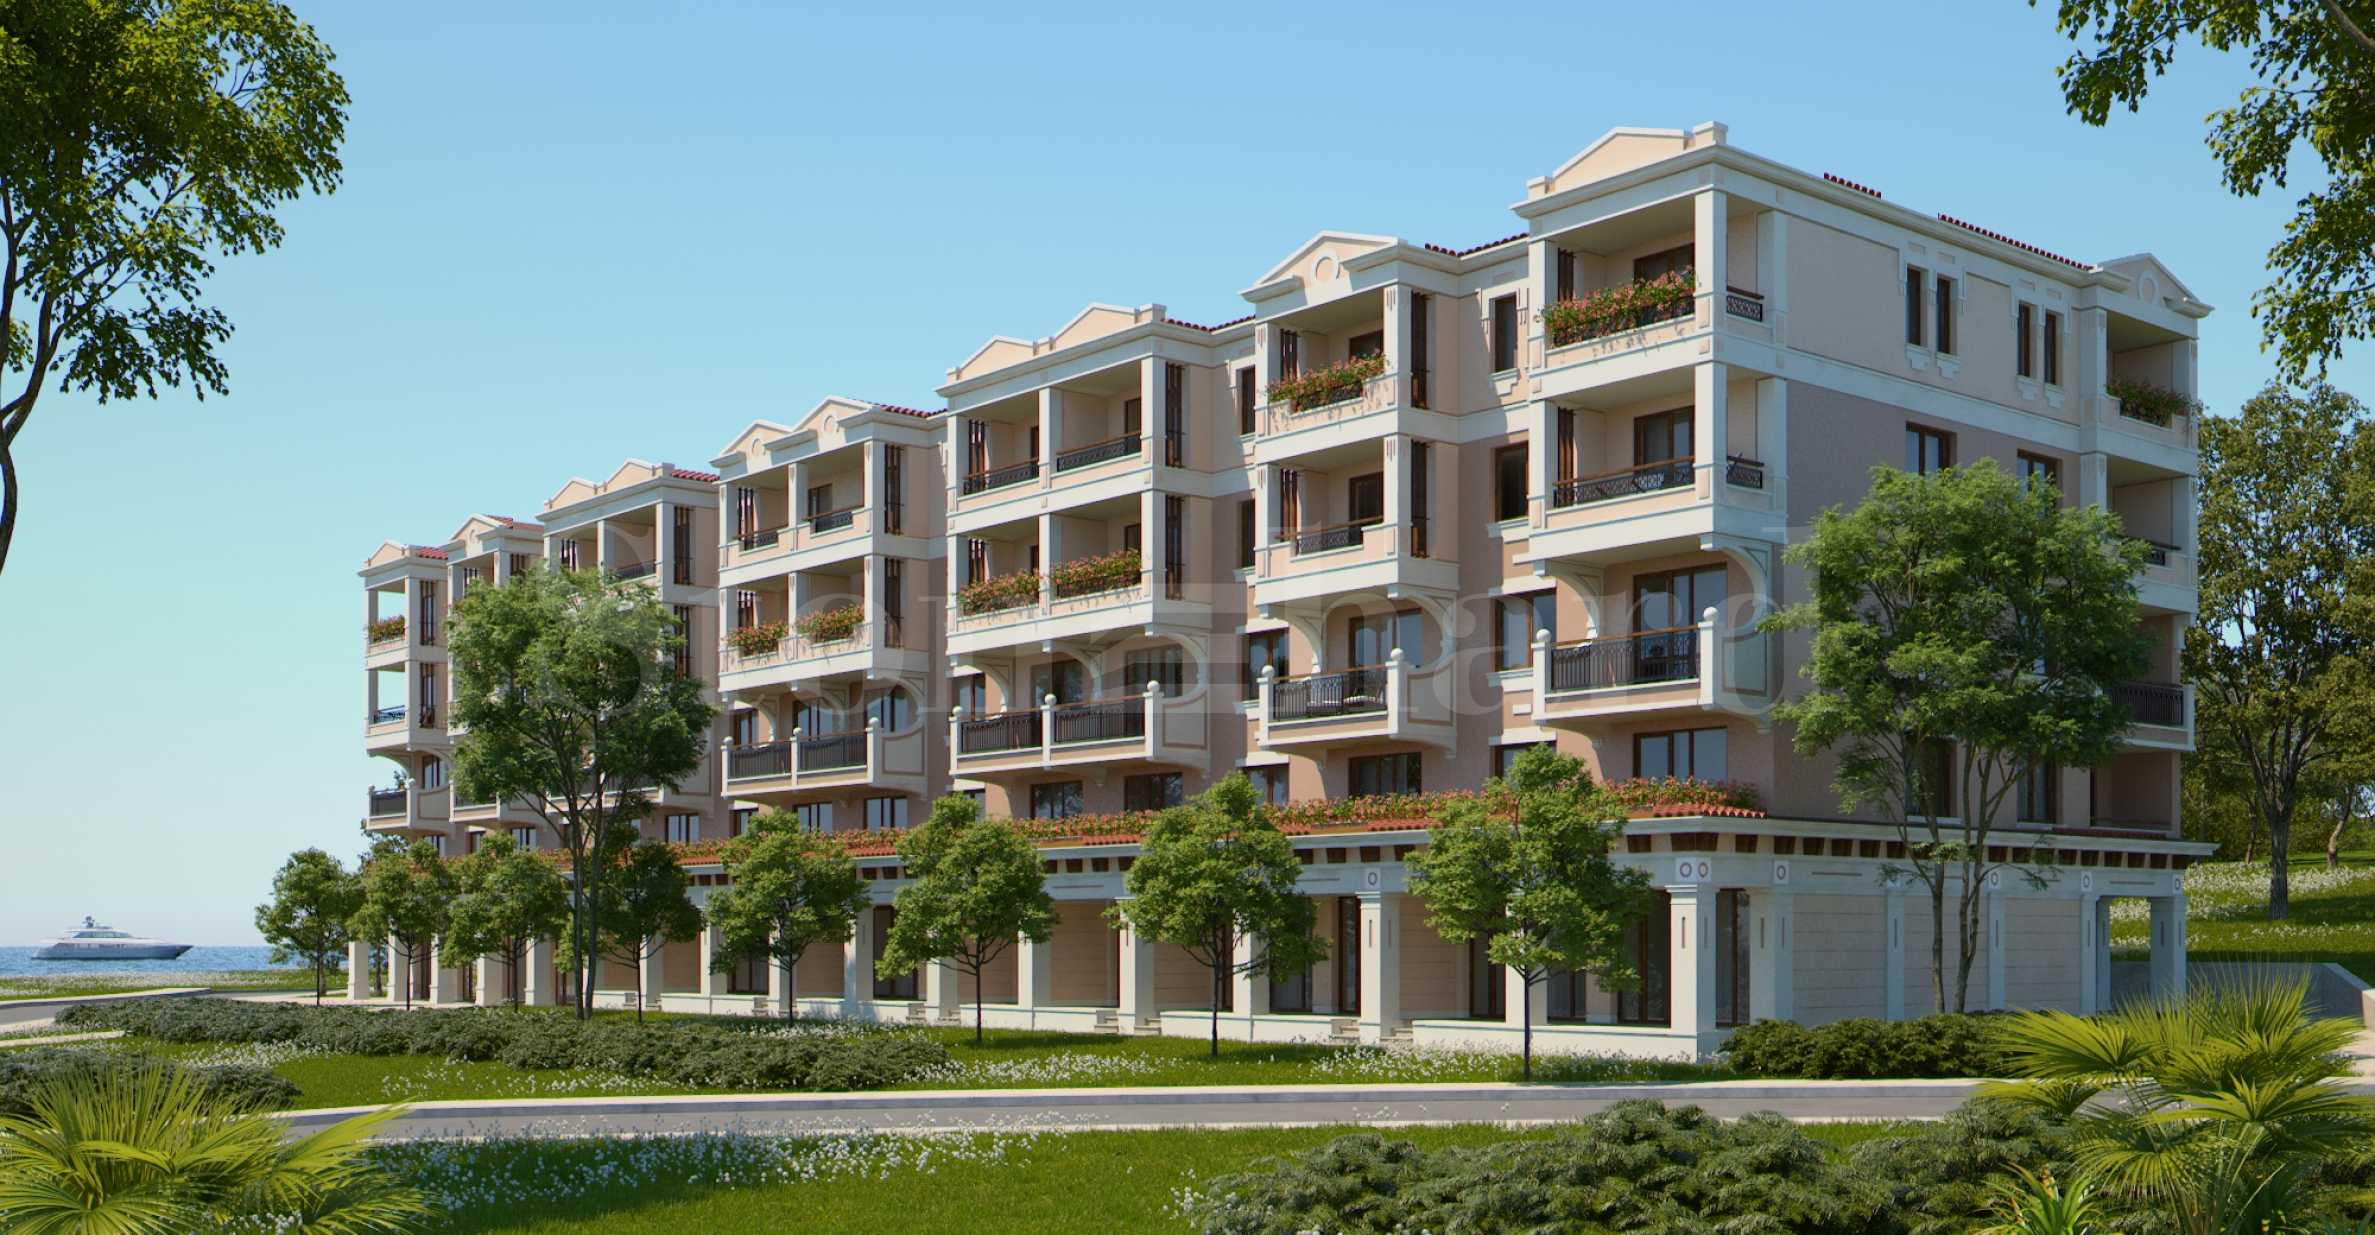 Premium apartments in a waterfront complex at attractive prices1 - Stonehard